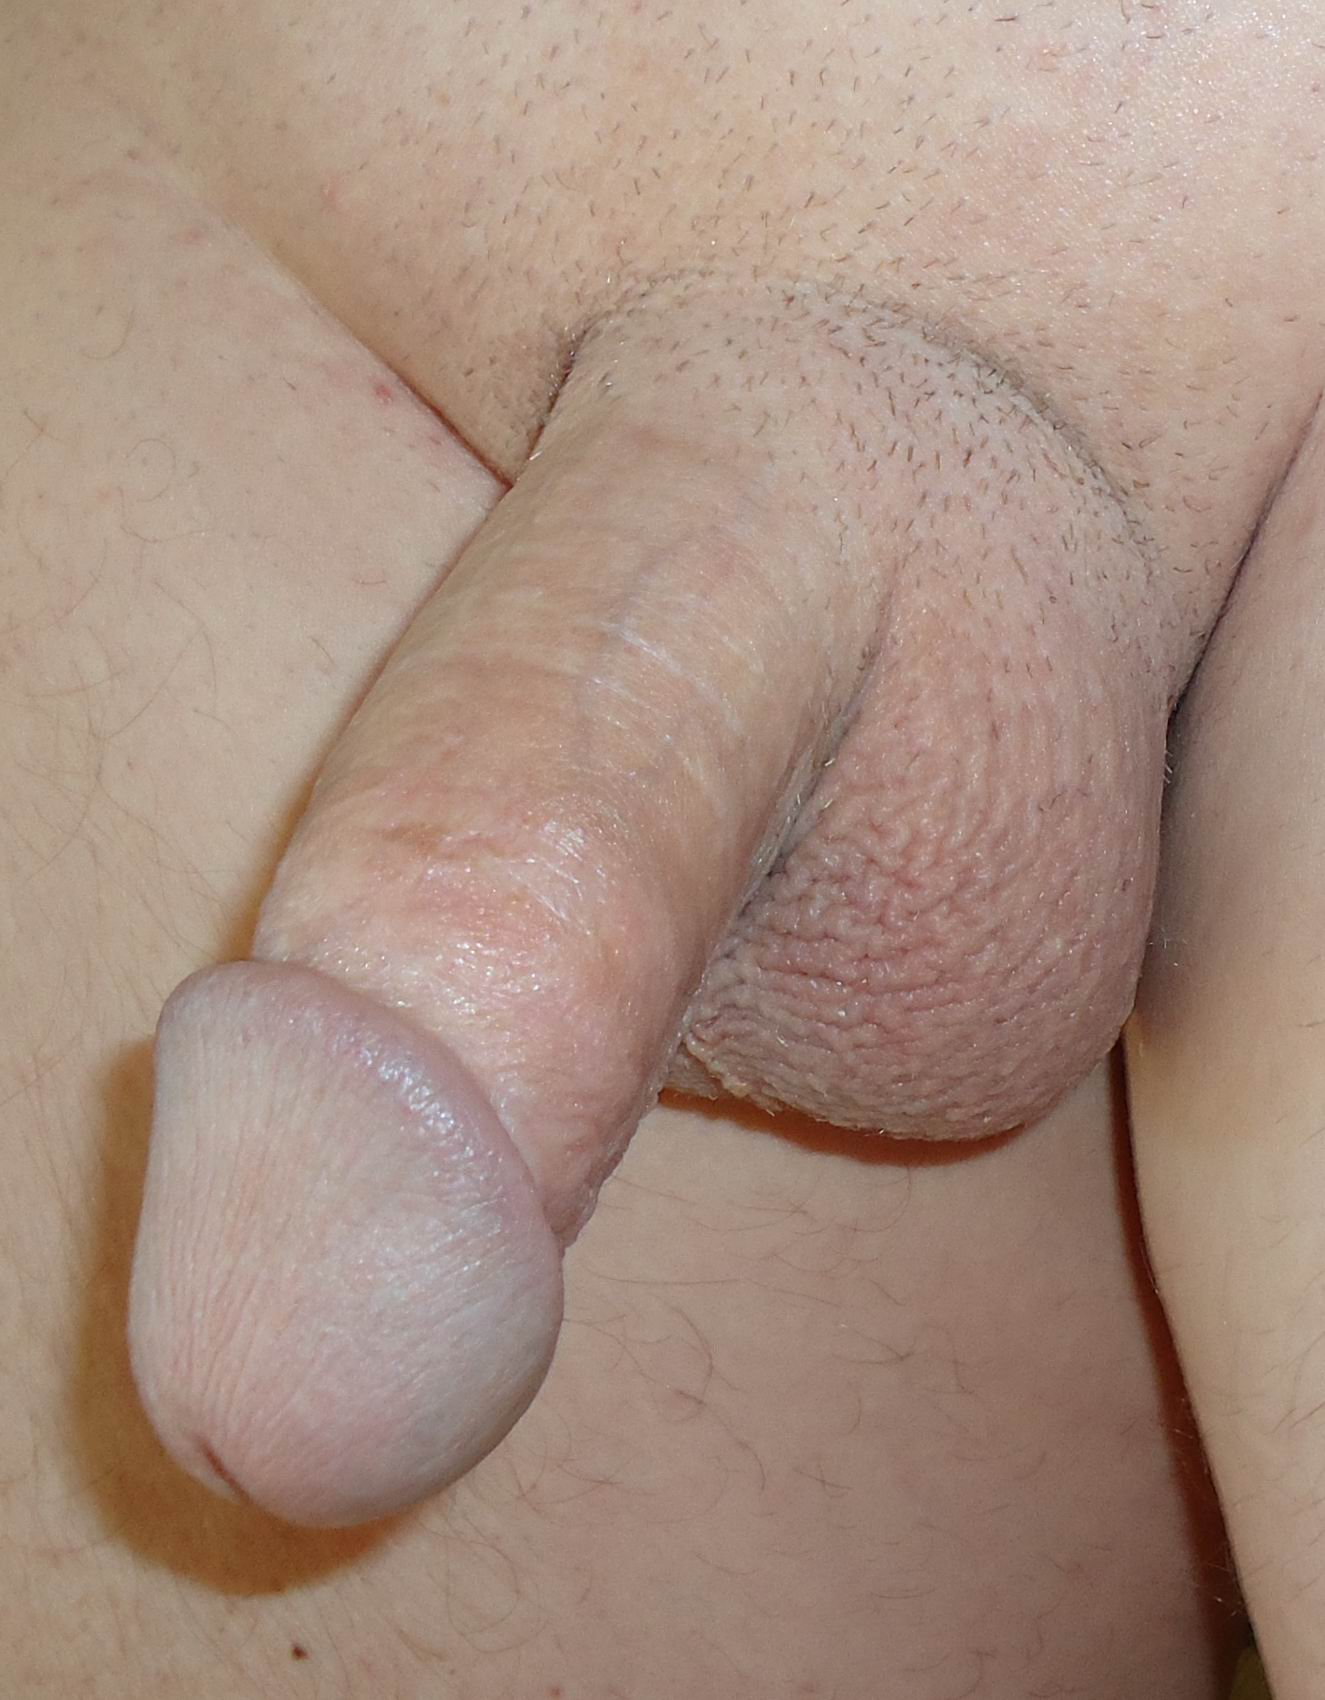 Masturbation after circumscision